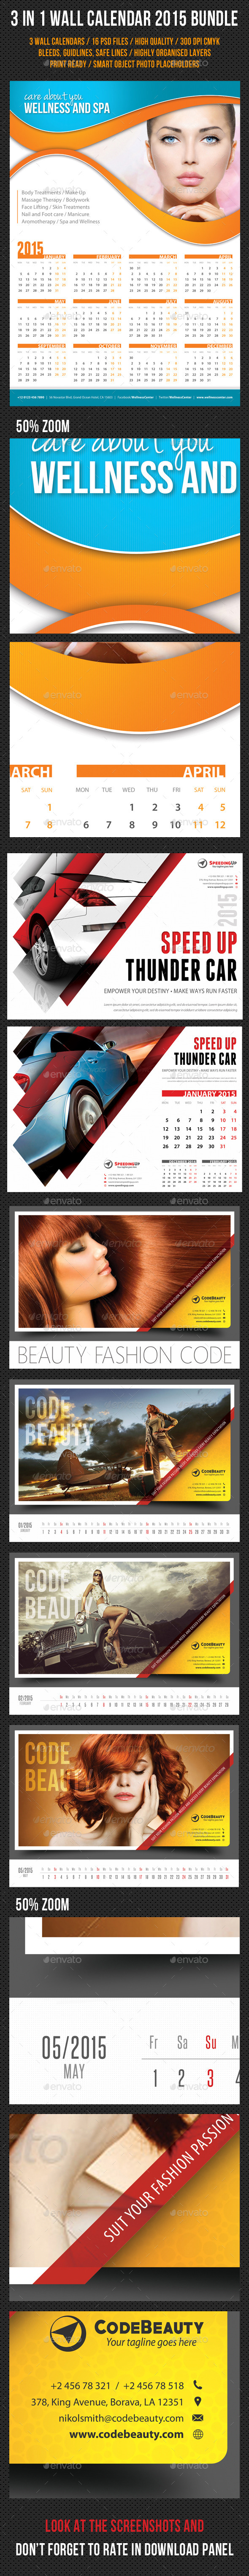 GraphicRiver 3 in 1 Wall Calendar 2015 Bundle V04 9513966